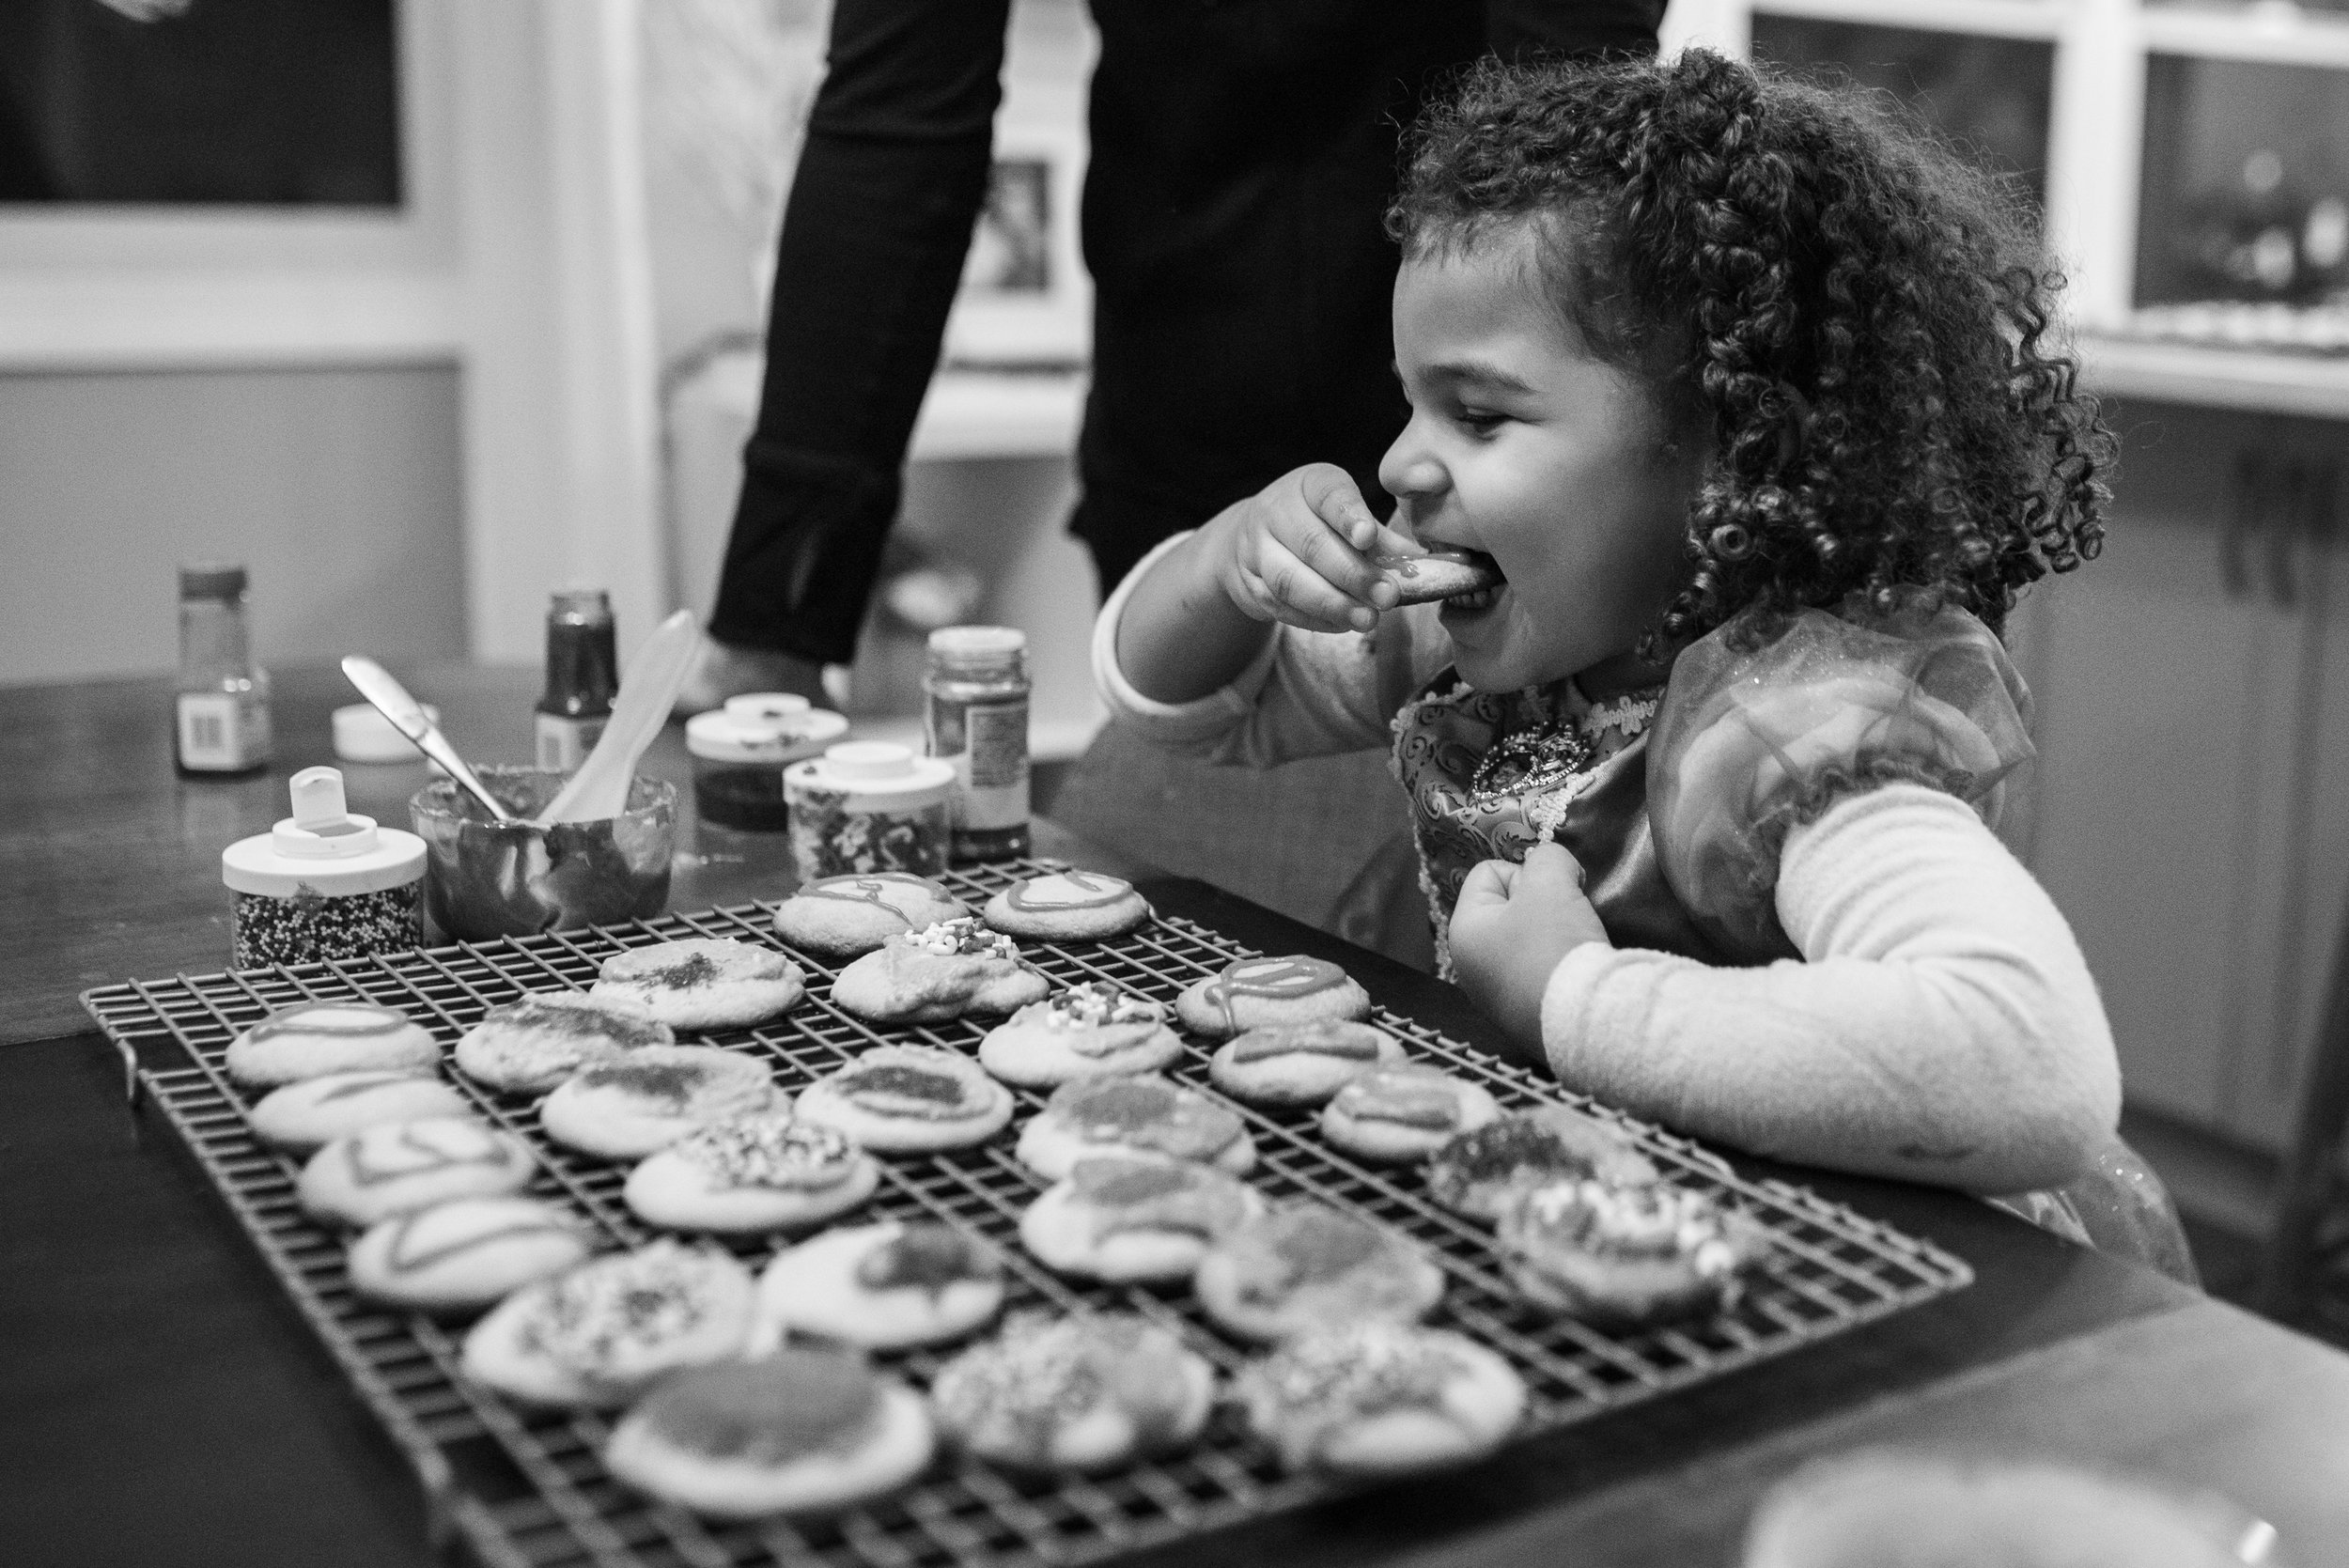 Girl watching cookies